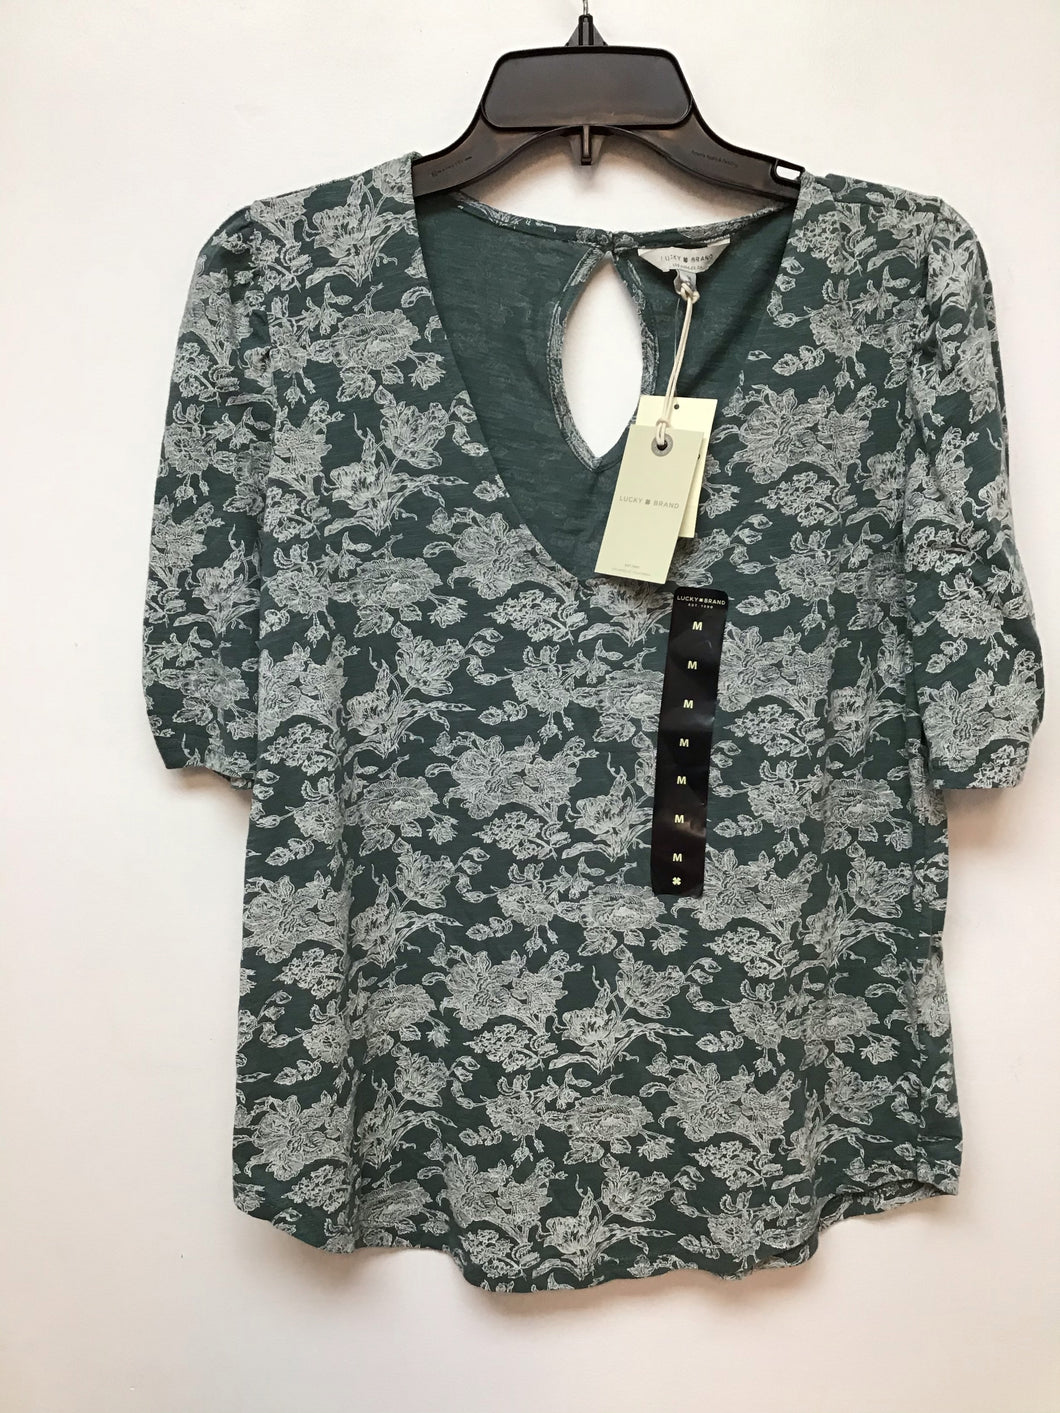 Lucky Brand green with white floral print size medium